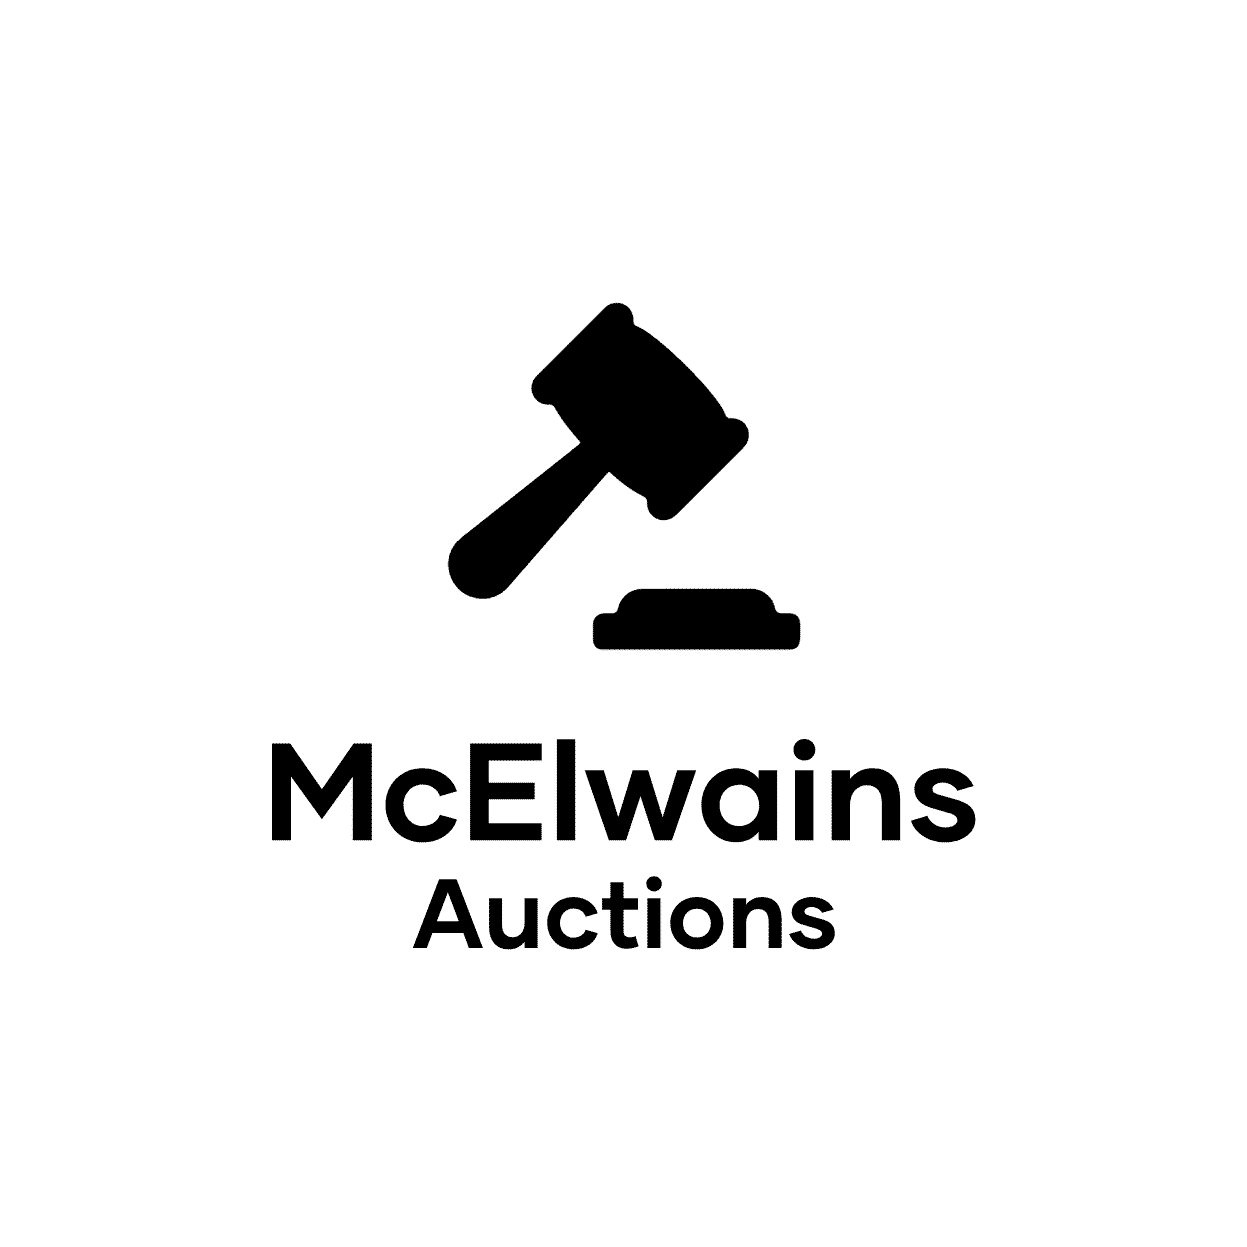 McElwains Auctions